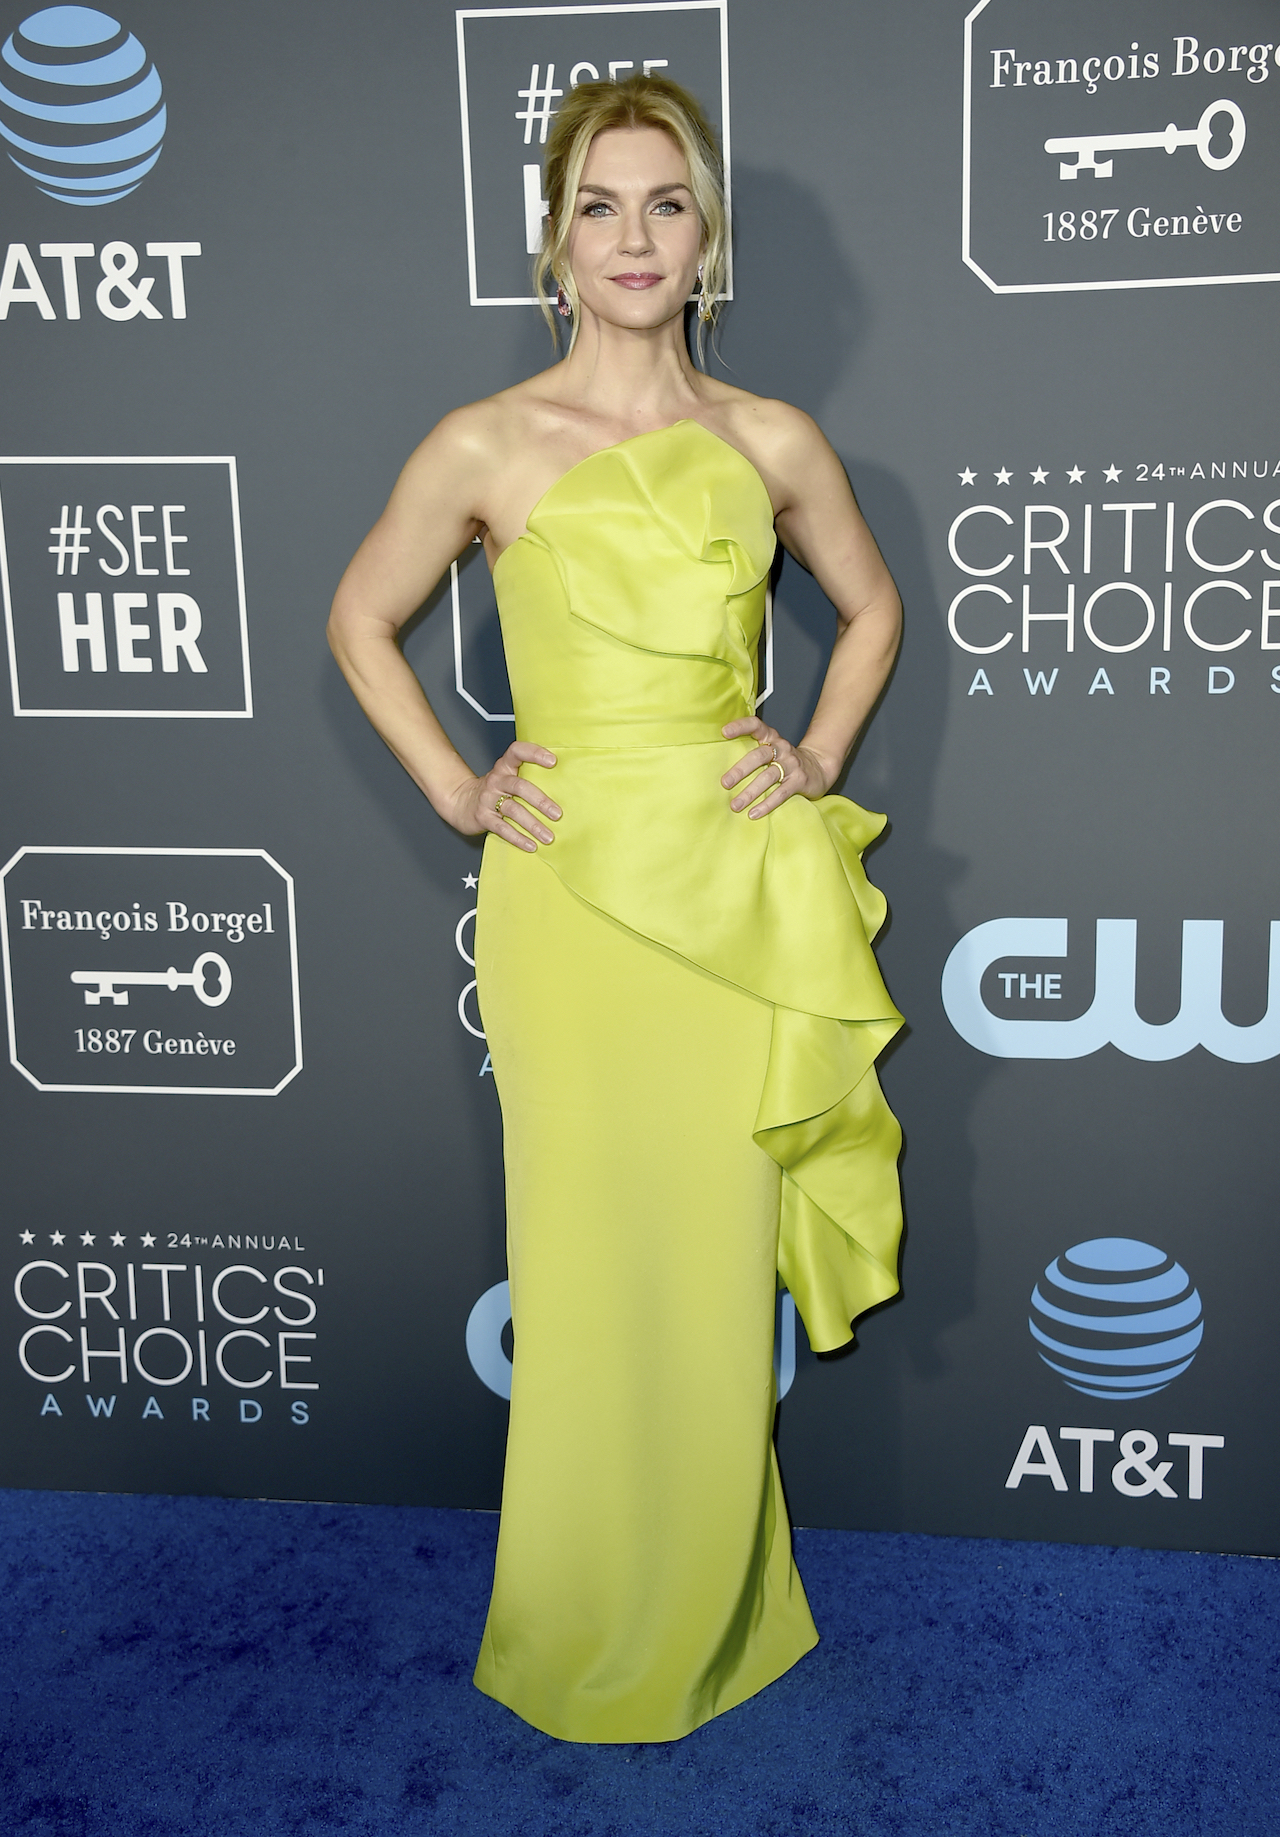 <div class='meta'><div class='origin-logo' data-origin='AP'></div><span class='caption-text' data-credit='Jordan Strauss/Invision/AP'>Rhea Seehorn arrives at the 24th annual Critics' Choice Awards on Sunday, Jan. 13, 2019, at the Barker Hangar in Santa Monica, Calif.</span></div>